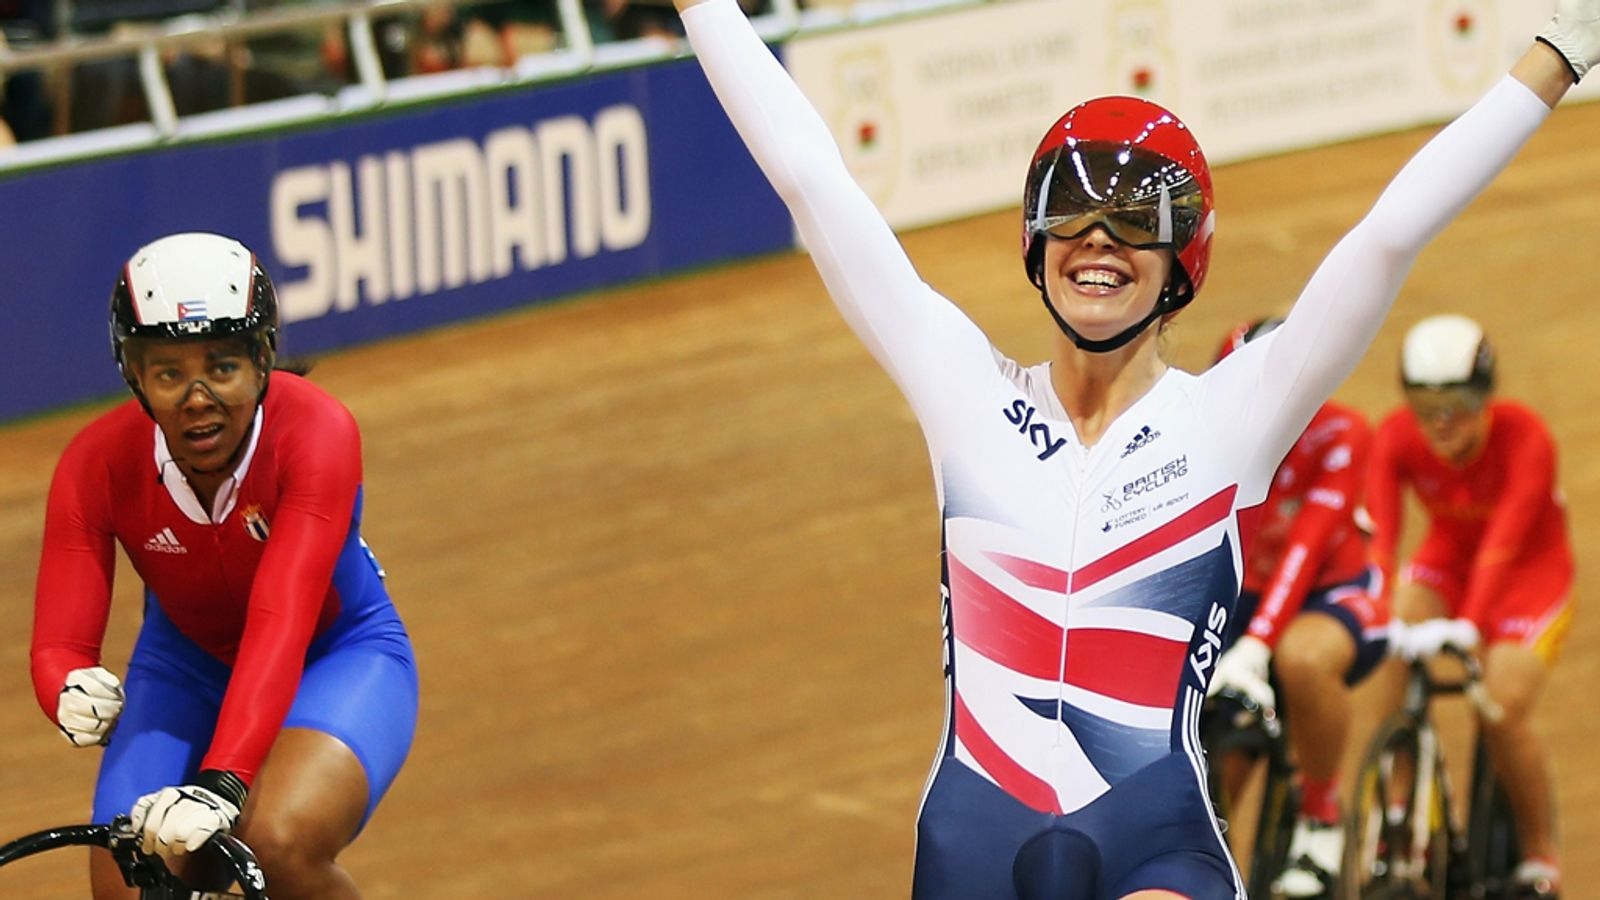 Becky James makes history by winning fourth medal in Minsk with keirin gold